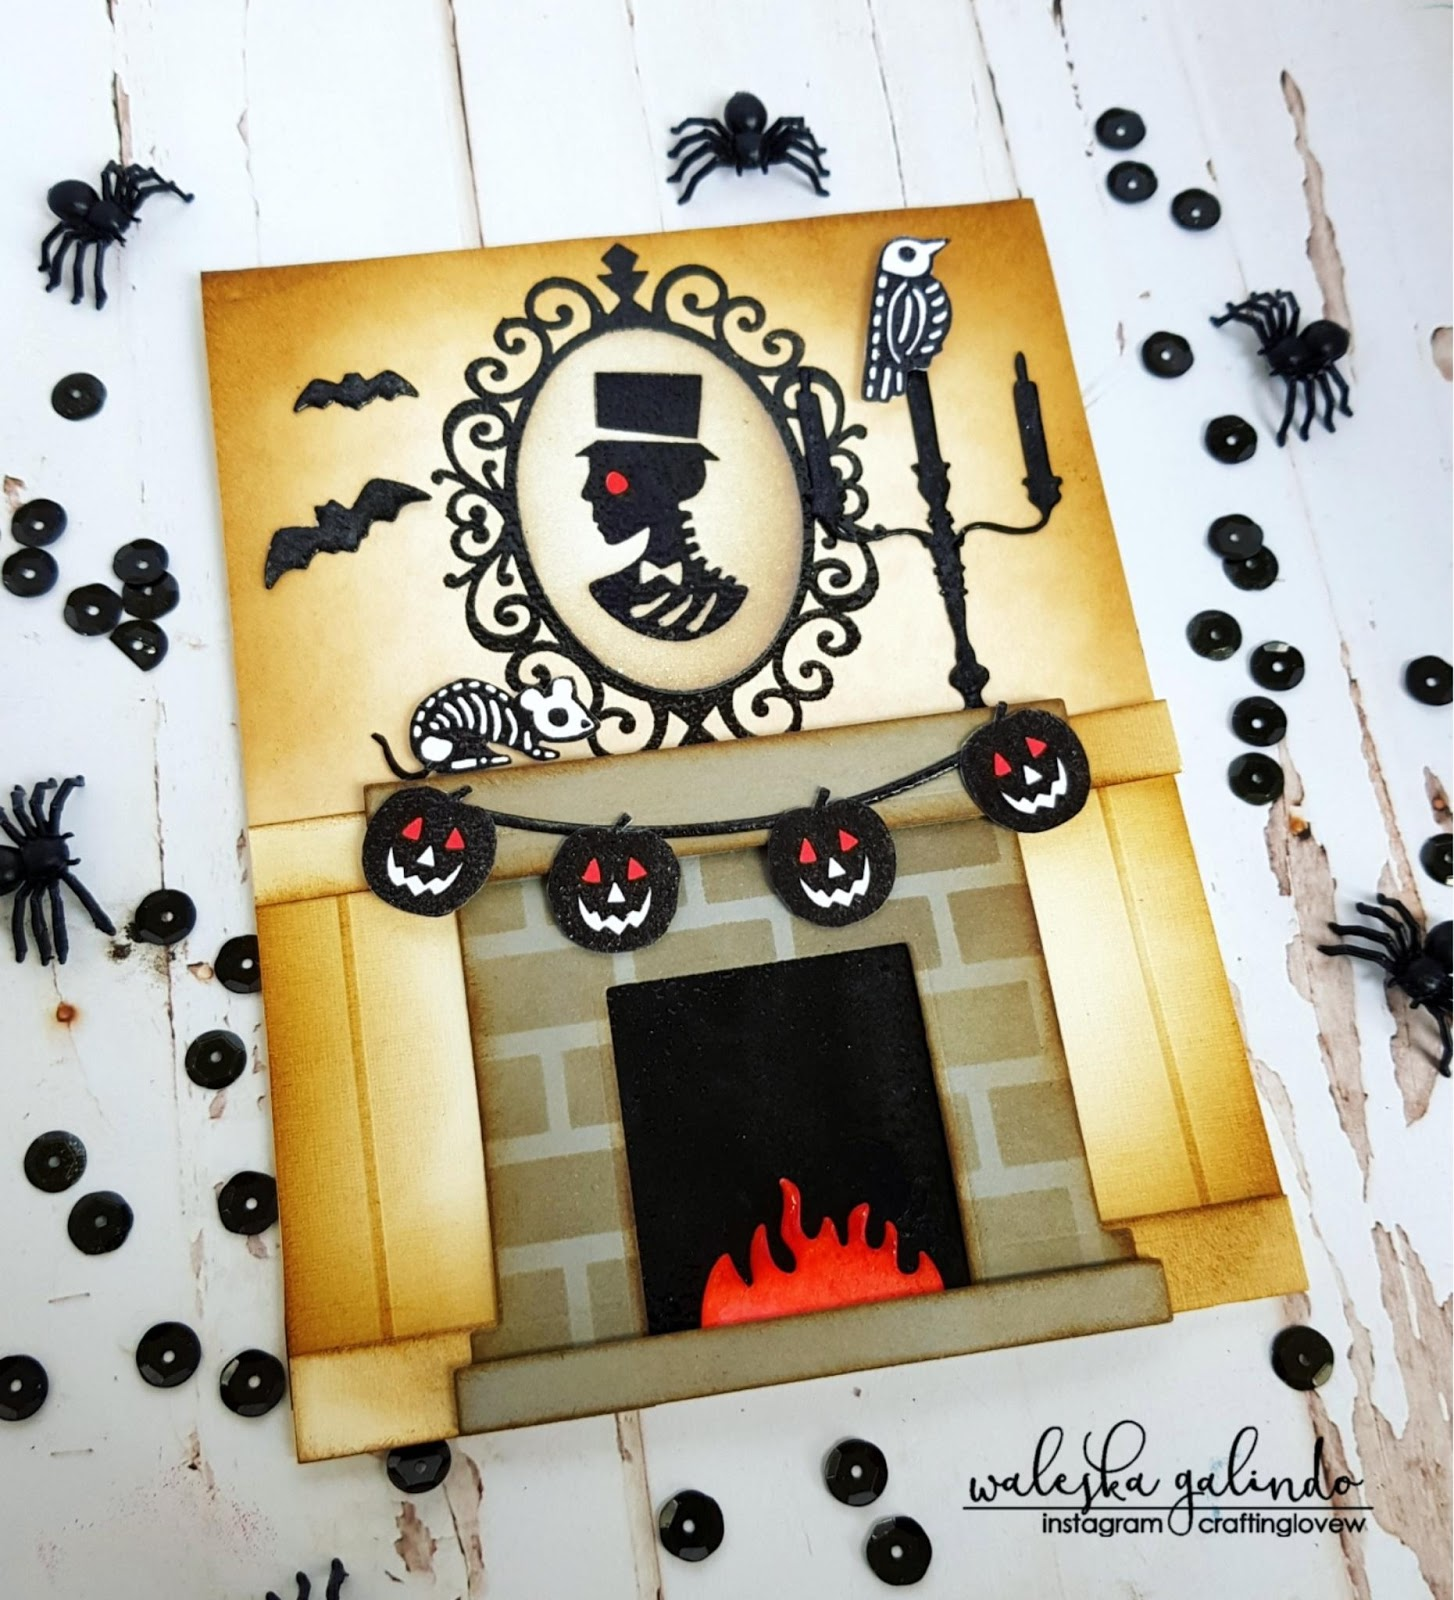 Spooky Card by October Guest Designer Waleska Galindo | Creepy Cameos and Spooky Skeletons Stamp Sets by Newton's Nook Designs #newtonsnook #handmade